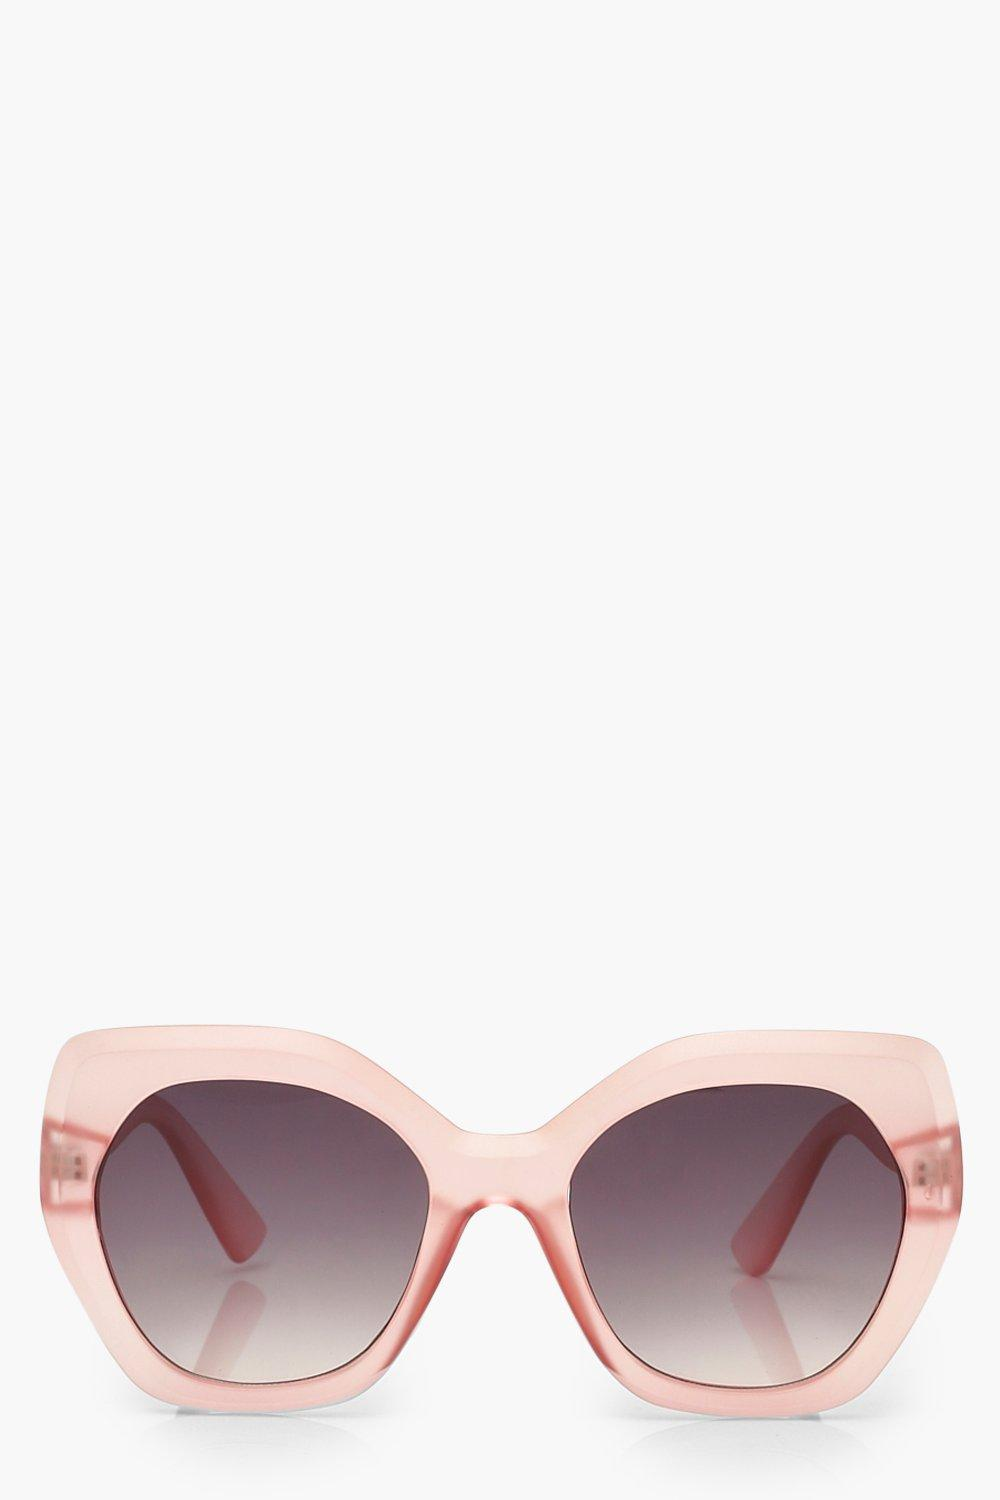 boohoo Womens Frosted Oversized Sunglasses - Pink - One Size, Pink